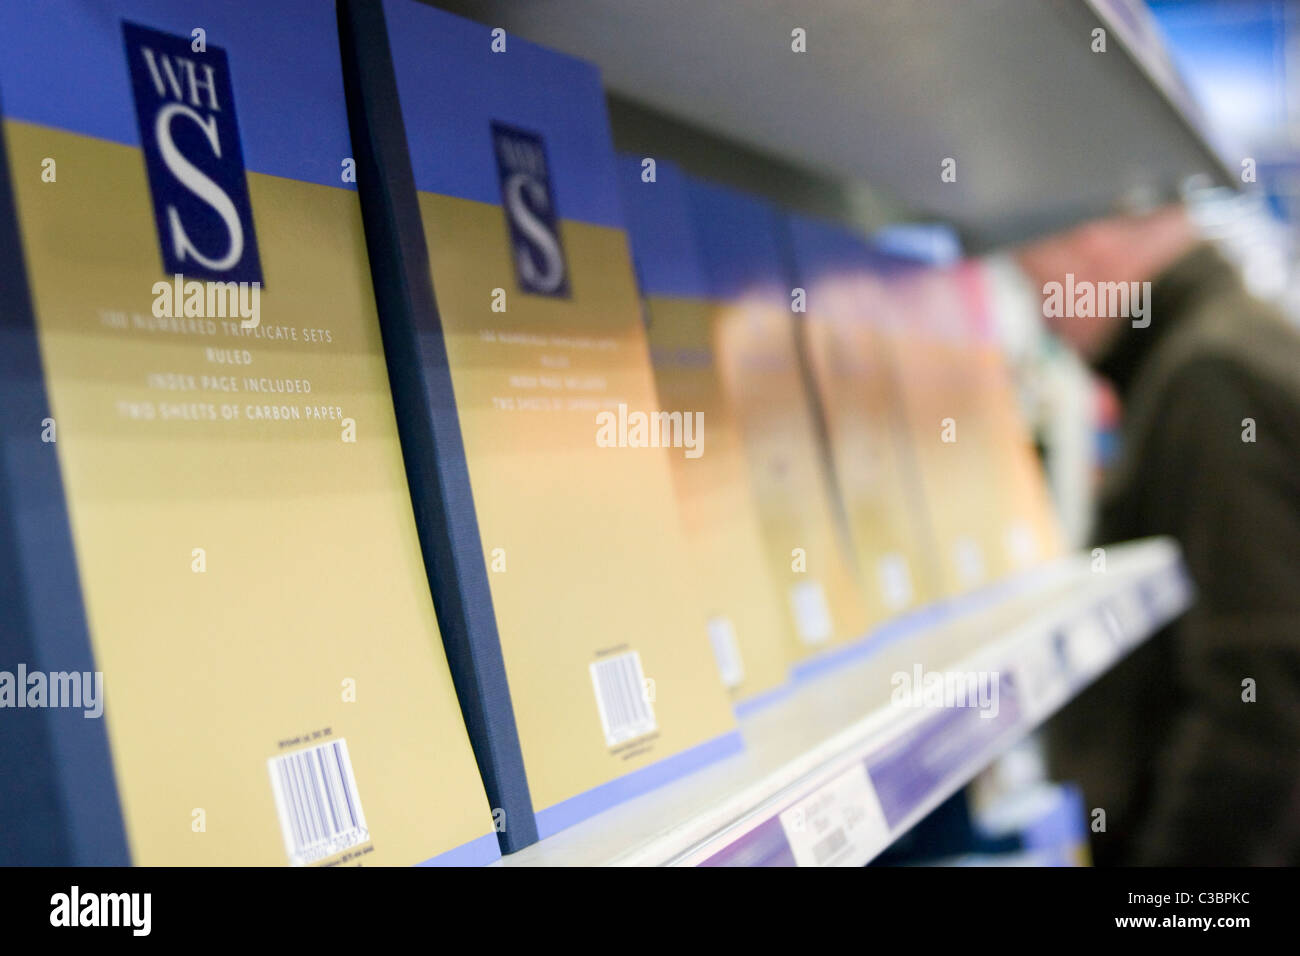 WH smith products displayed on an end of isle shelf. - Stock Image